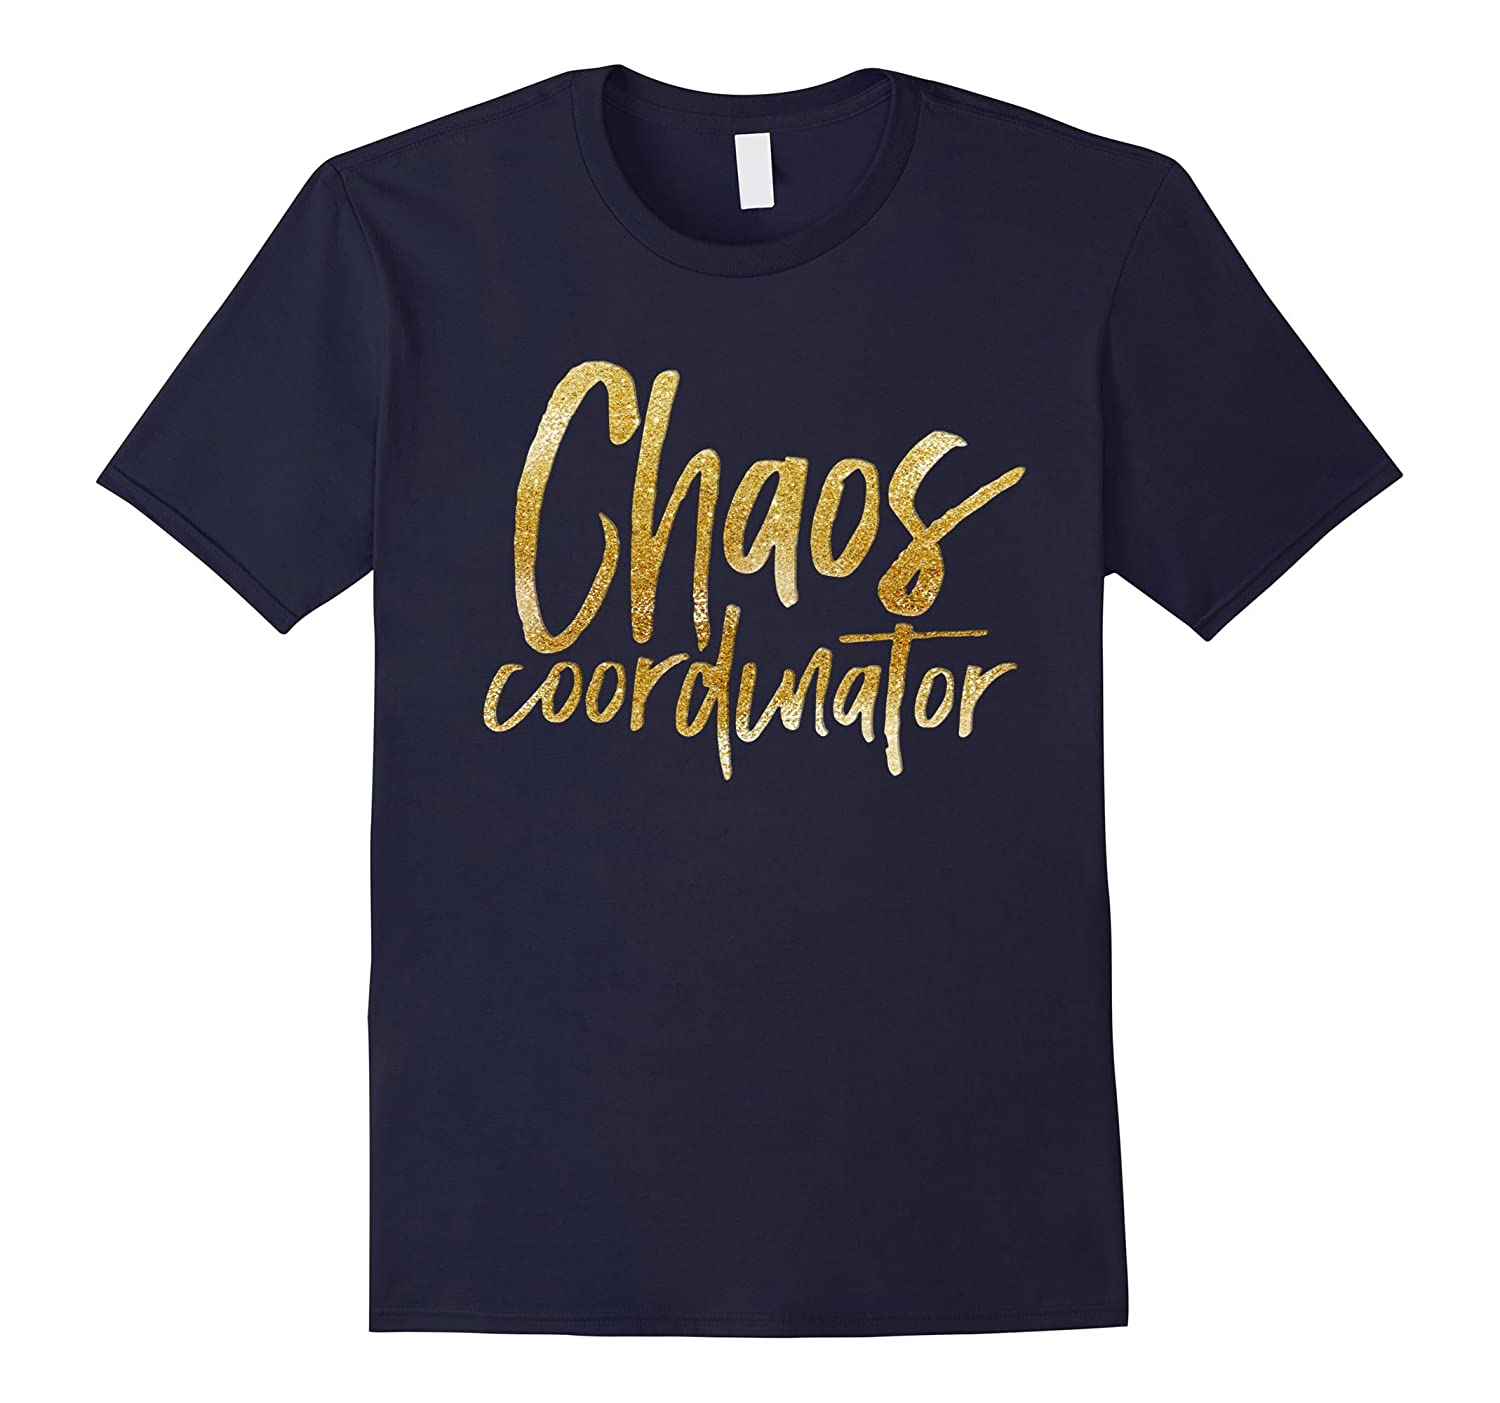 Chaos Coordinator Shirt Golden Effect T-Shirt-Vaci